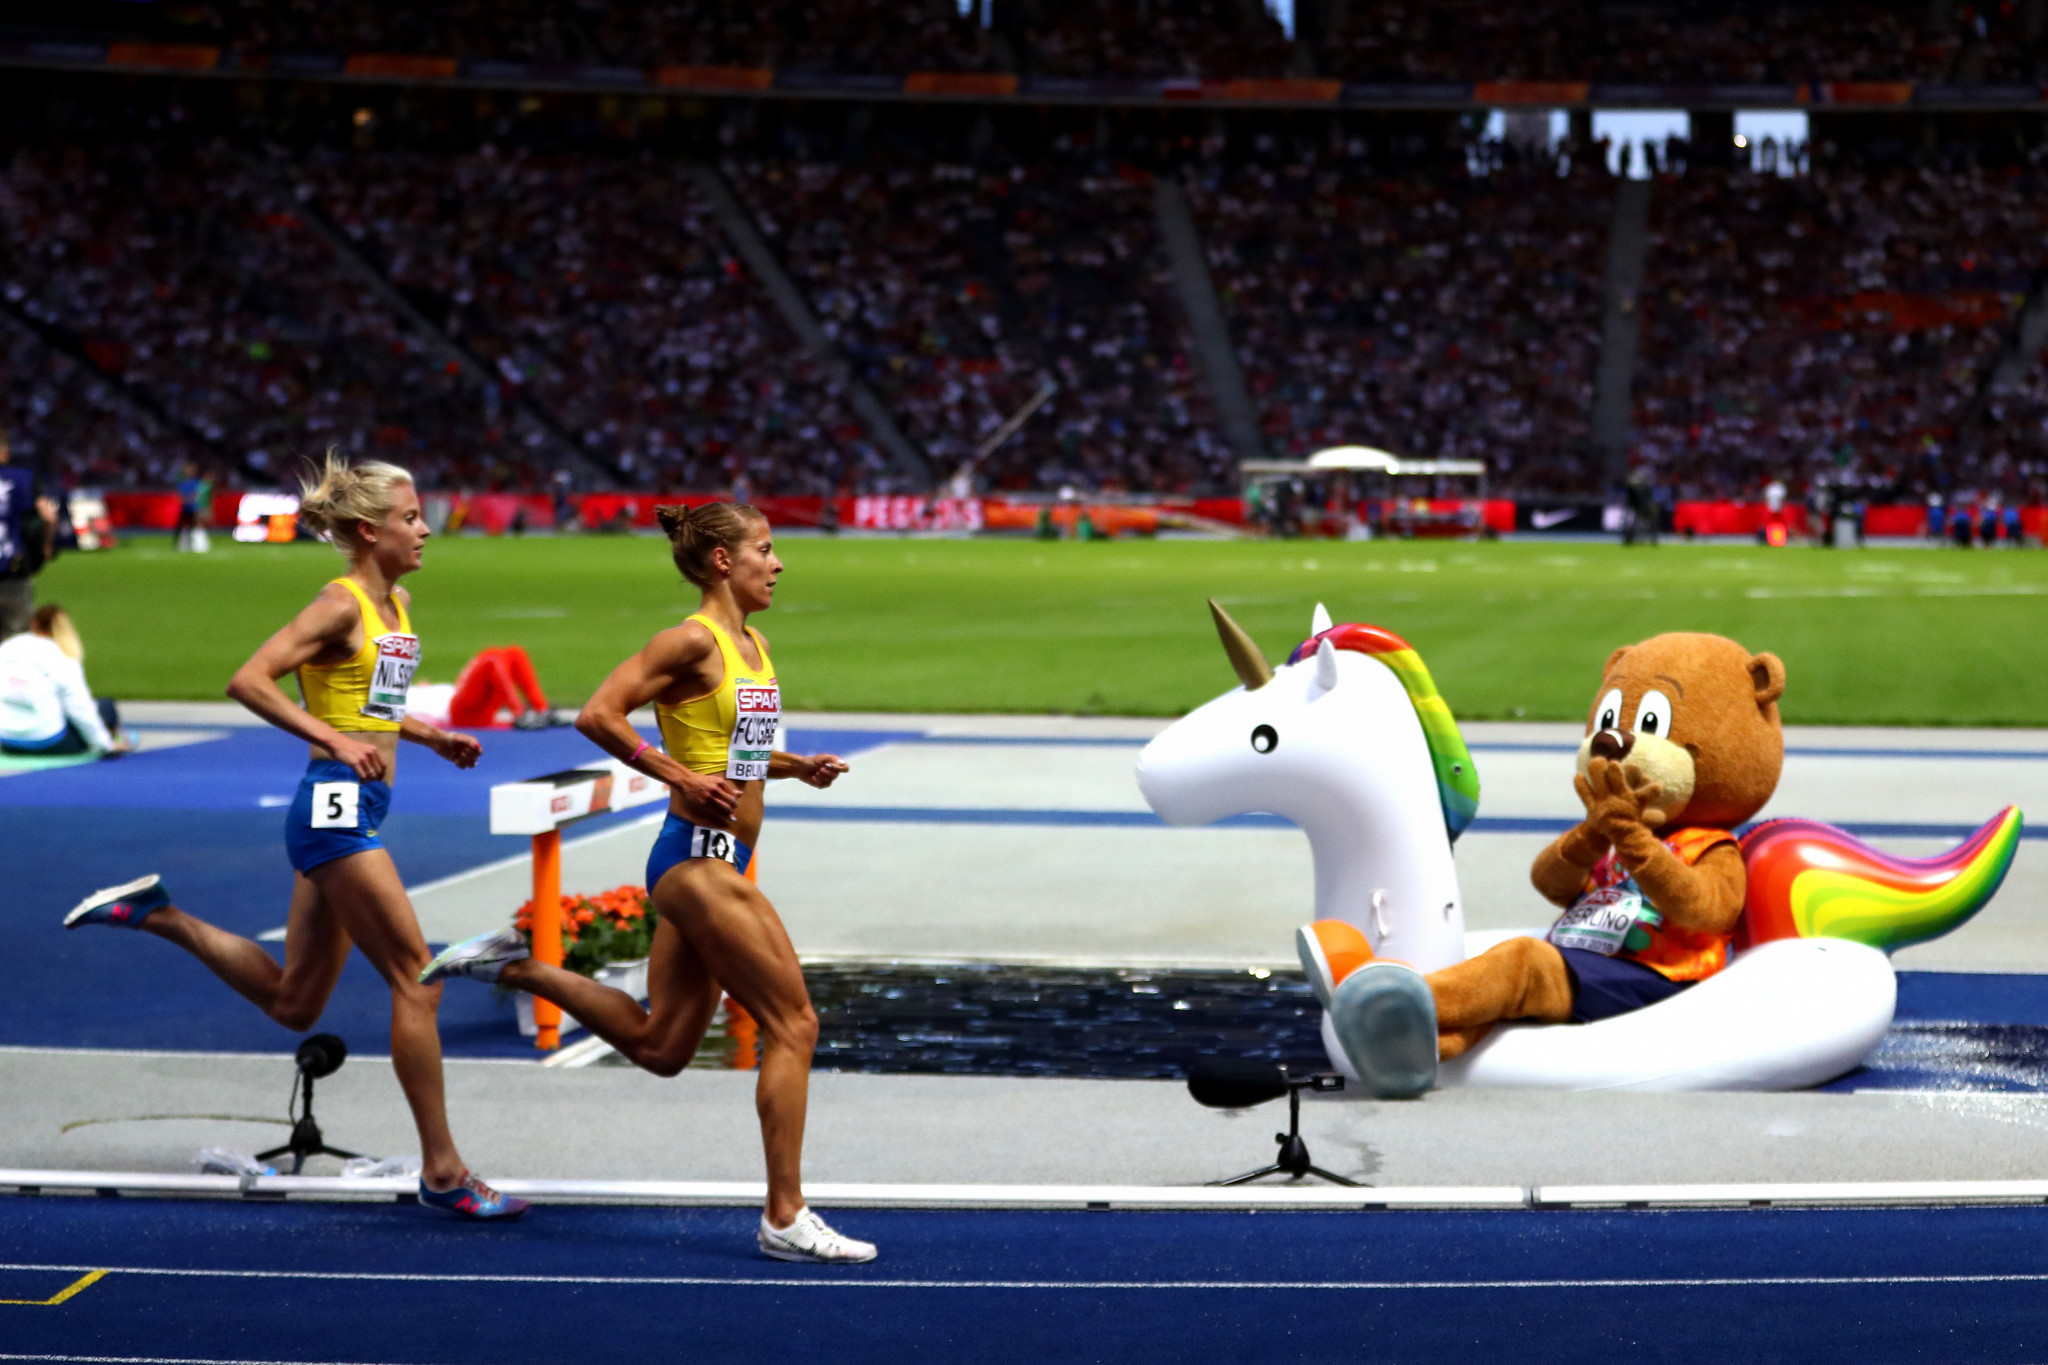 Berlin and Glasgow 2018 European Championships: Final day of competition